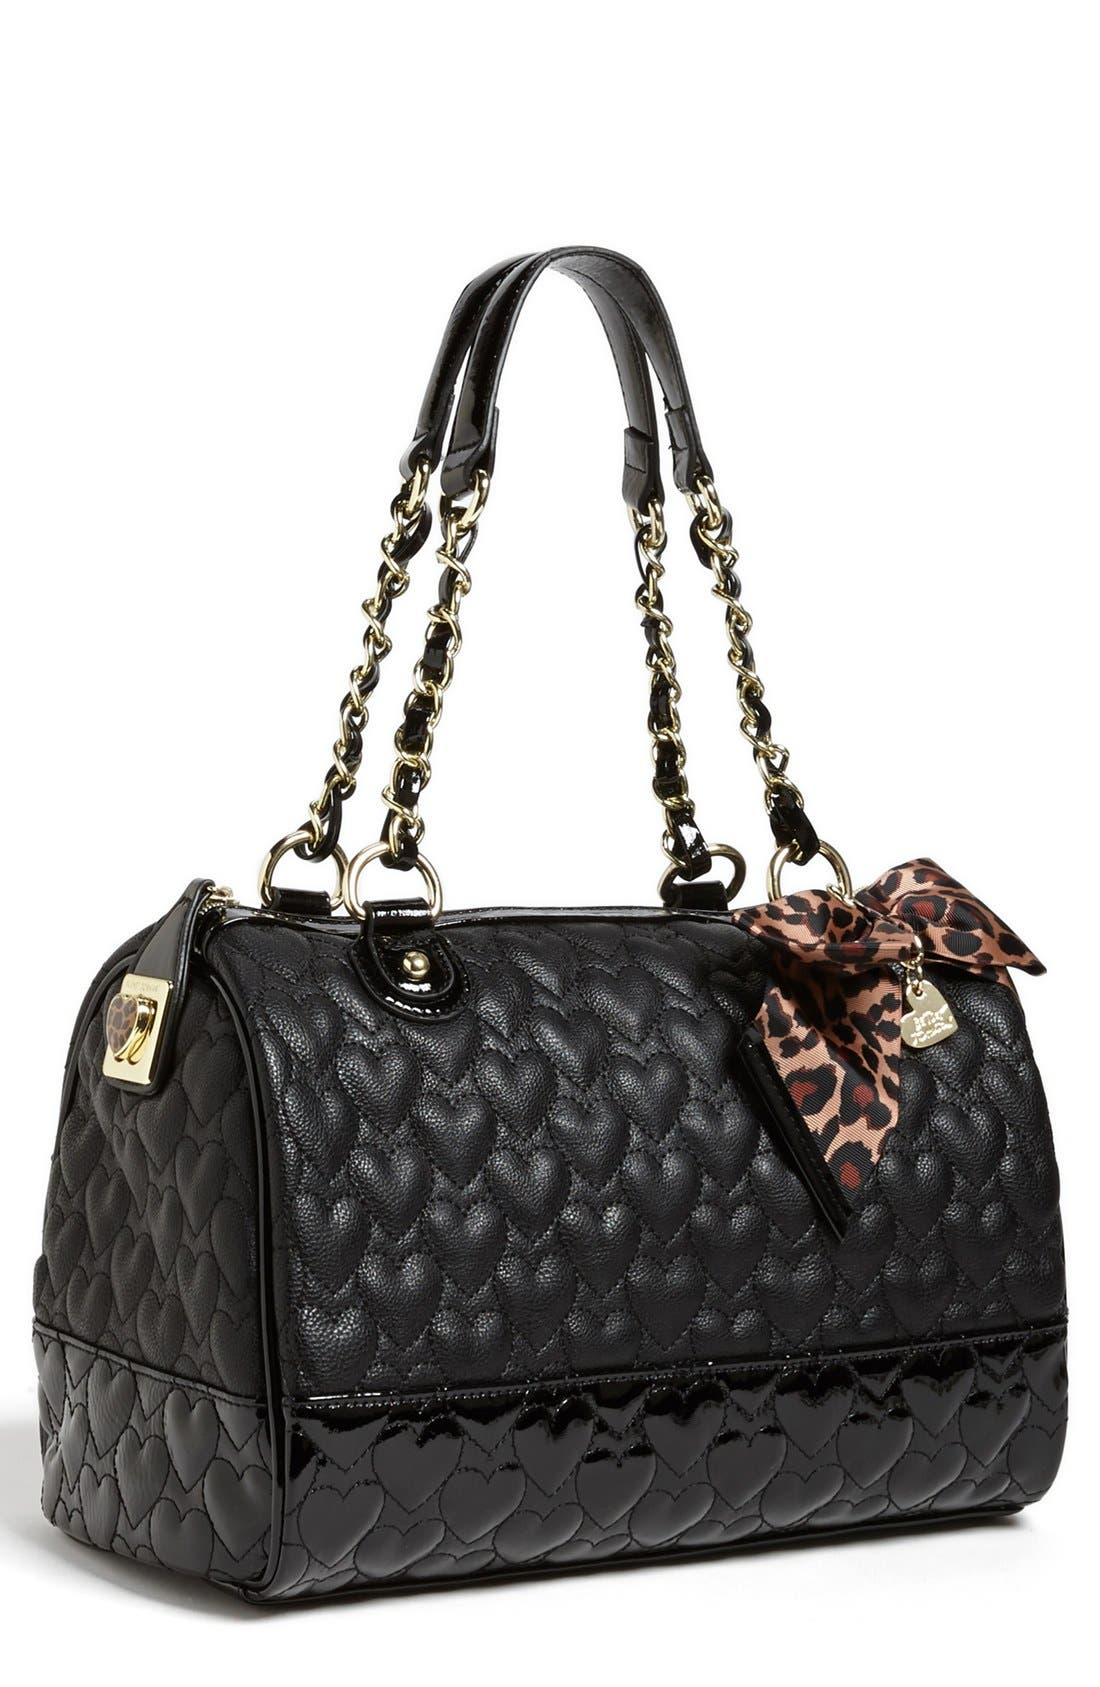 Alternate Image 1 Selected - Betsey Johnson 'Will You Be Mine' Satchel